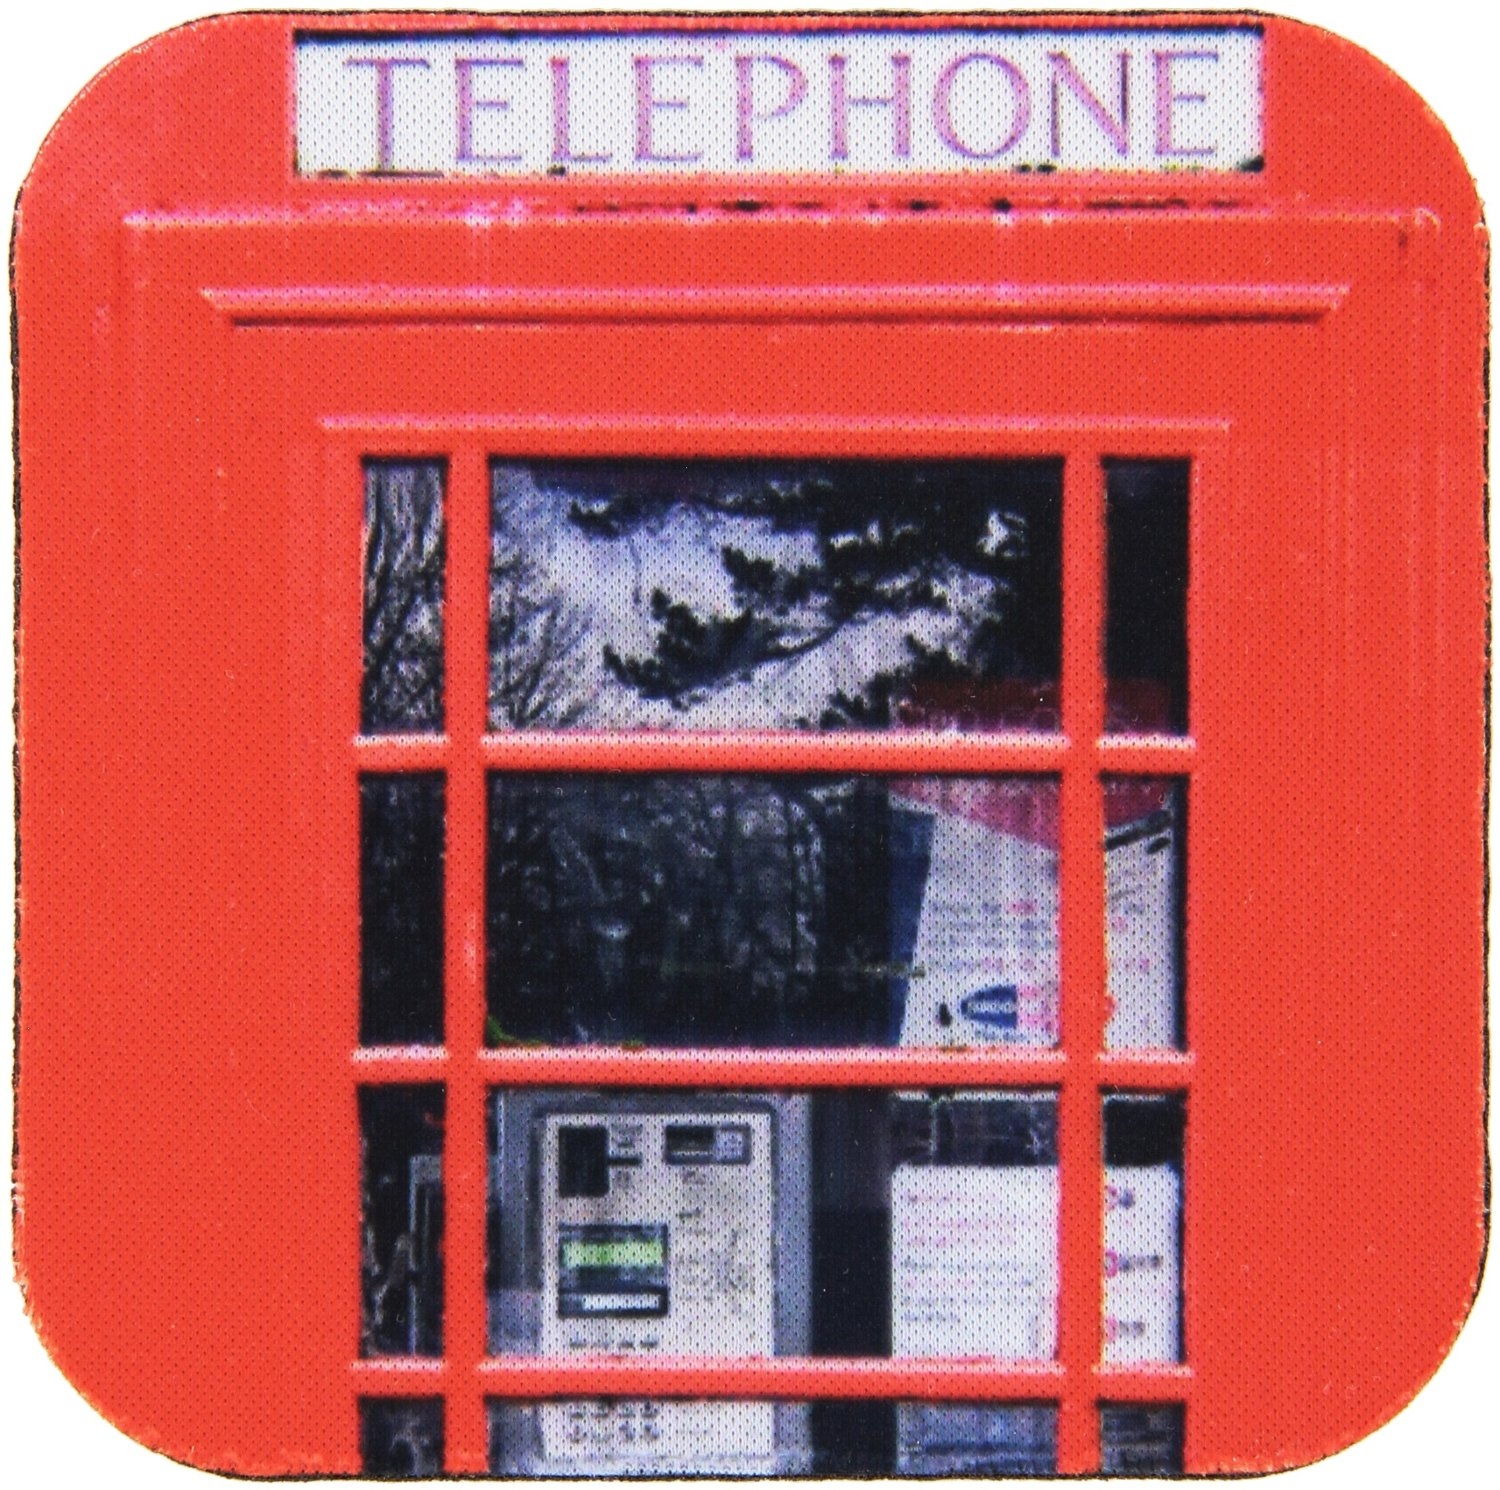 3dRose cst_113141_1 British Red Telephone Box Photo UK Vintage London United Kingdom Britain Travel Souvenir Photography-Soft Coasters, Set of 4